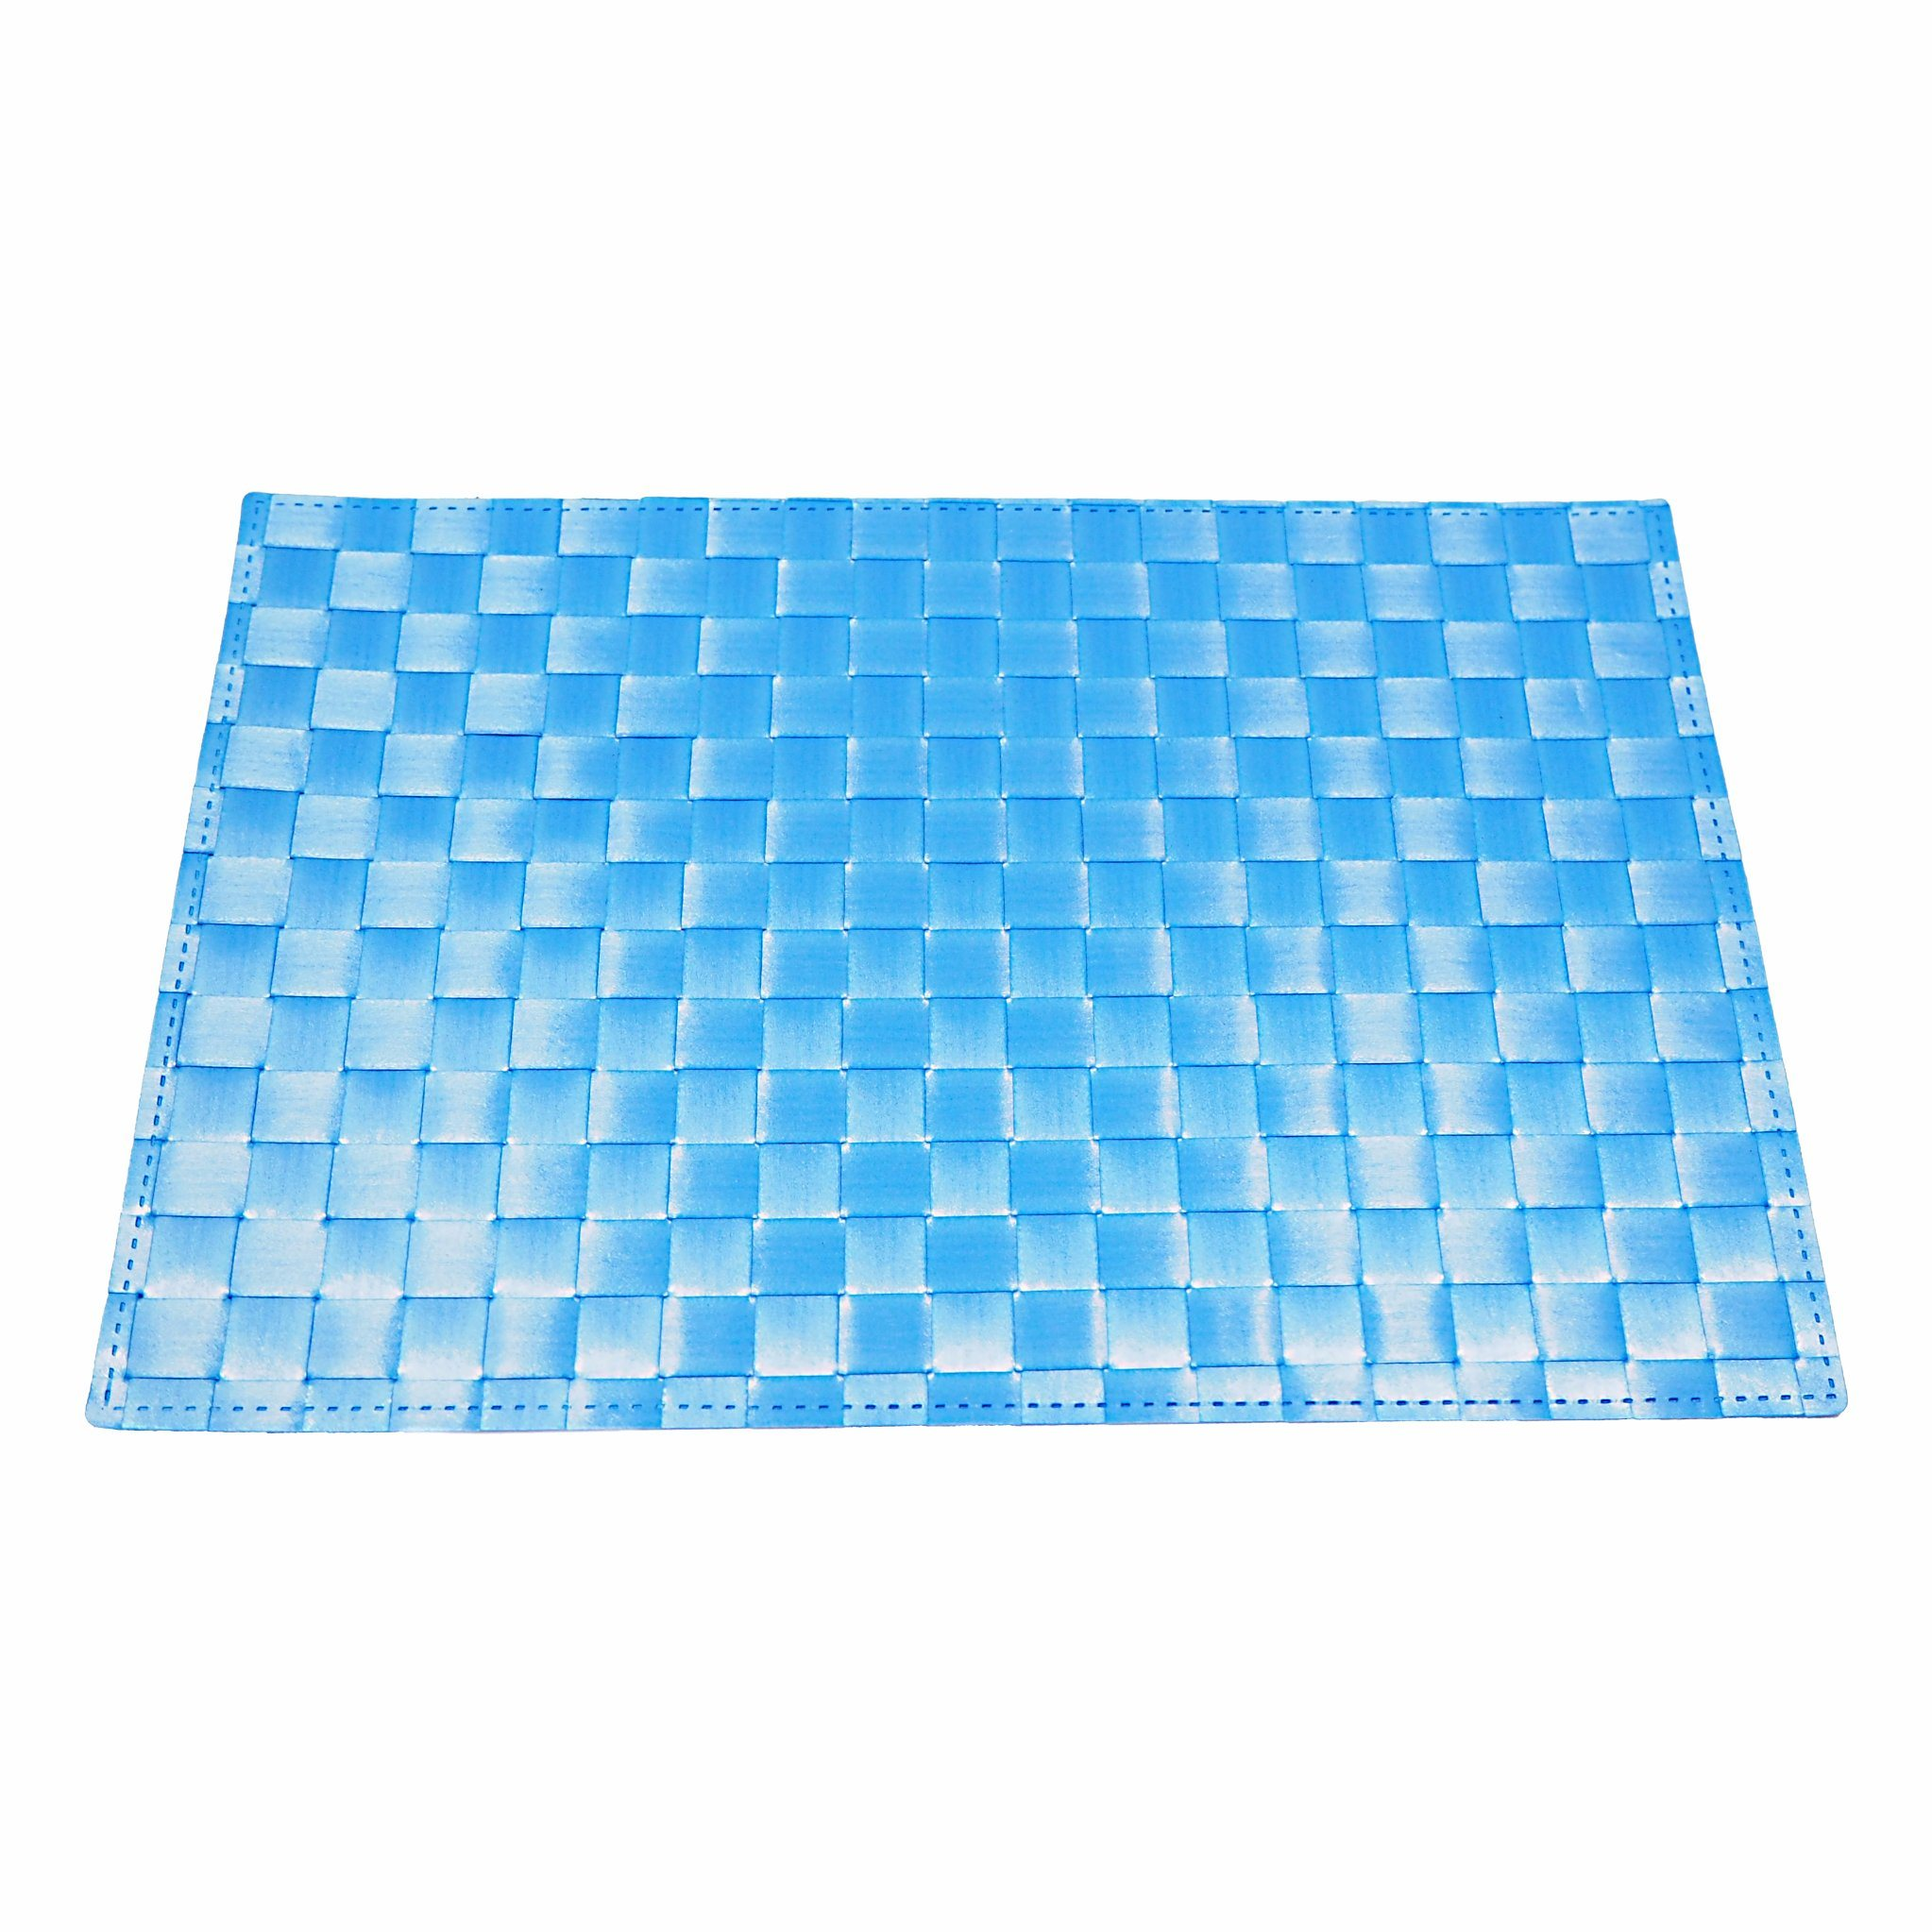 100% Polyester Mat for Tabletop